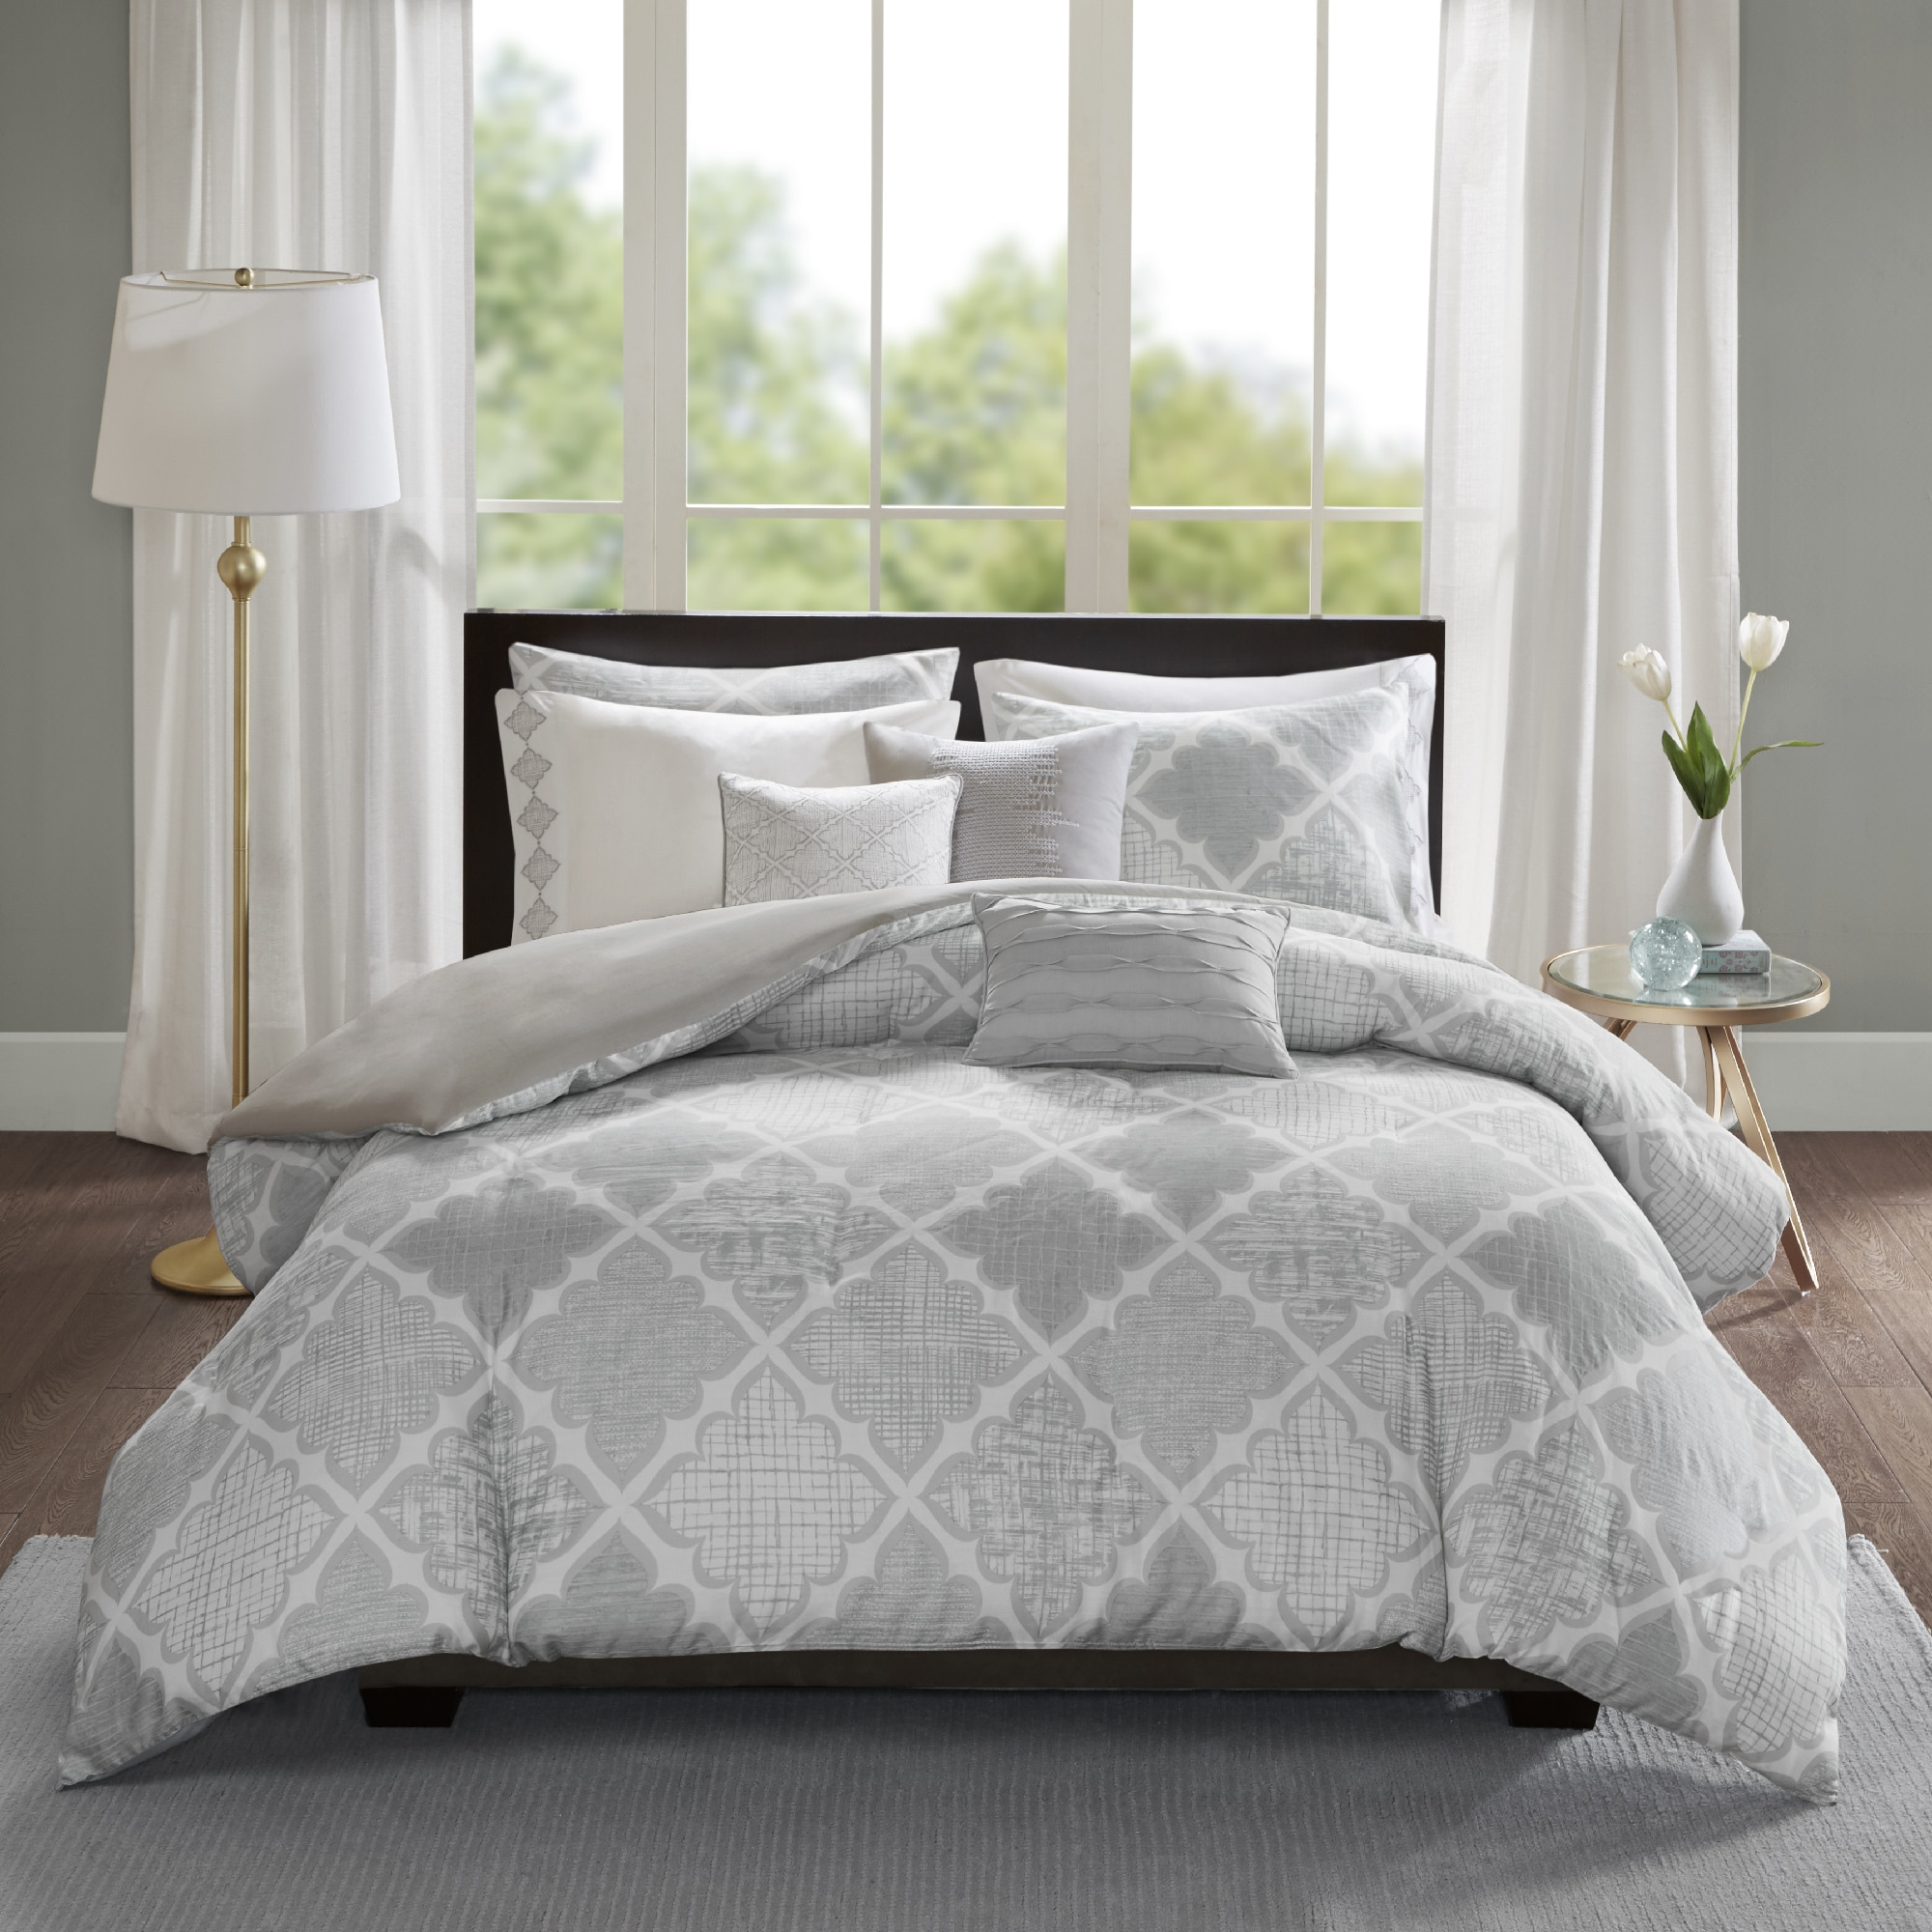 luxury bedding search listings madison advanced and duvet decorative s pillow quilted for cover park k seafoam set